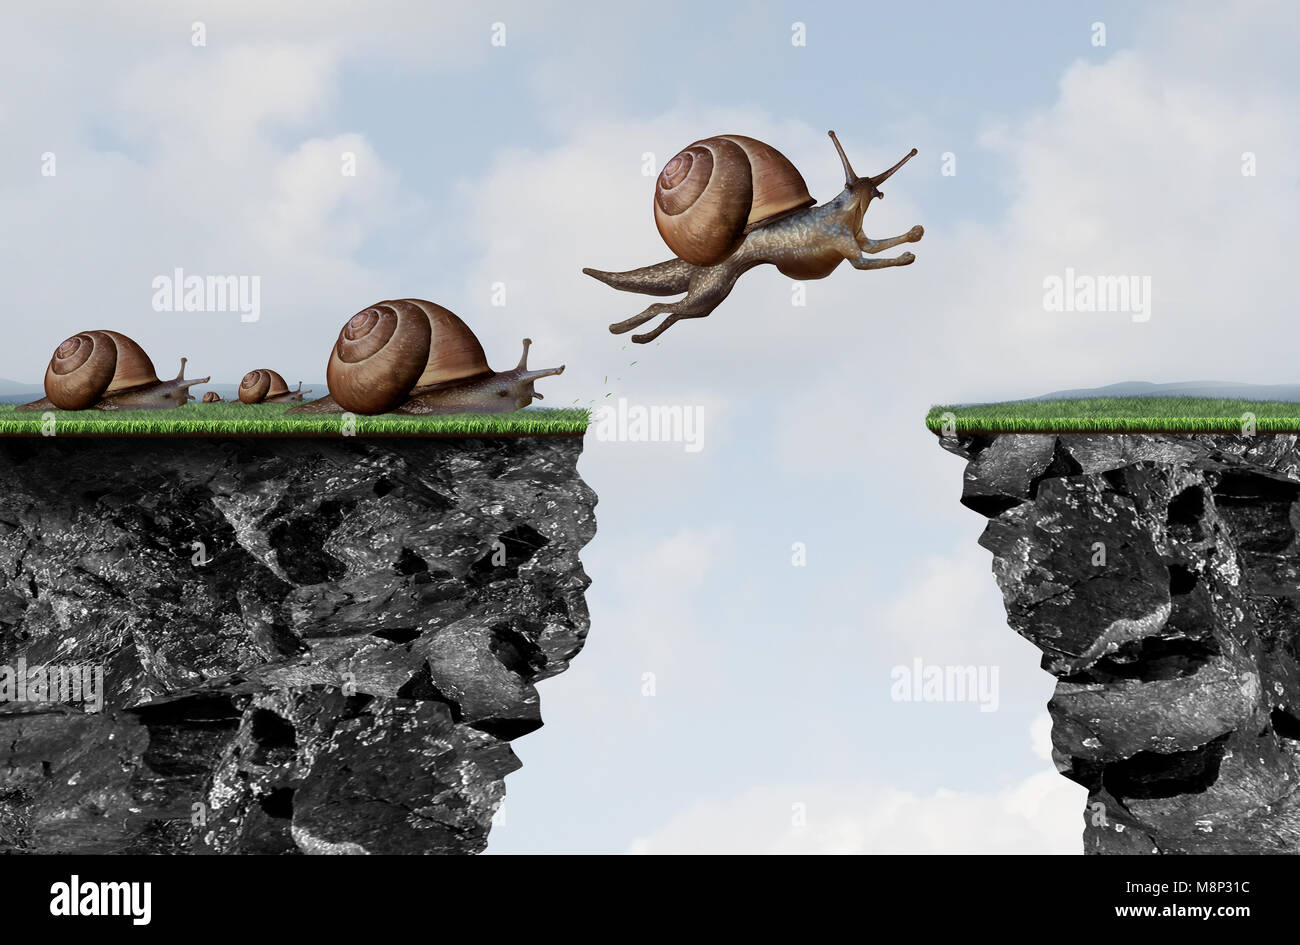 Innovation leadership philosophy as a business motivation with change idea as a snail jumping over a cliff with - Stock Image